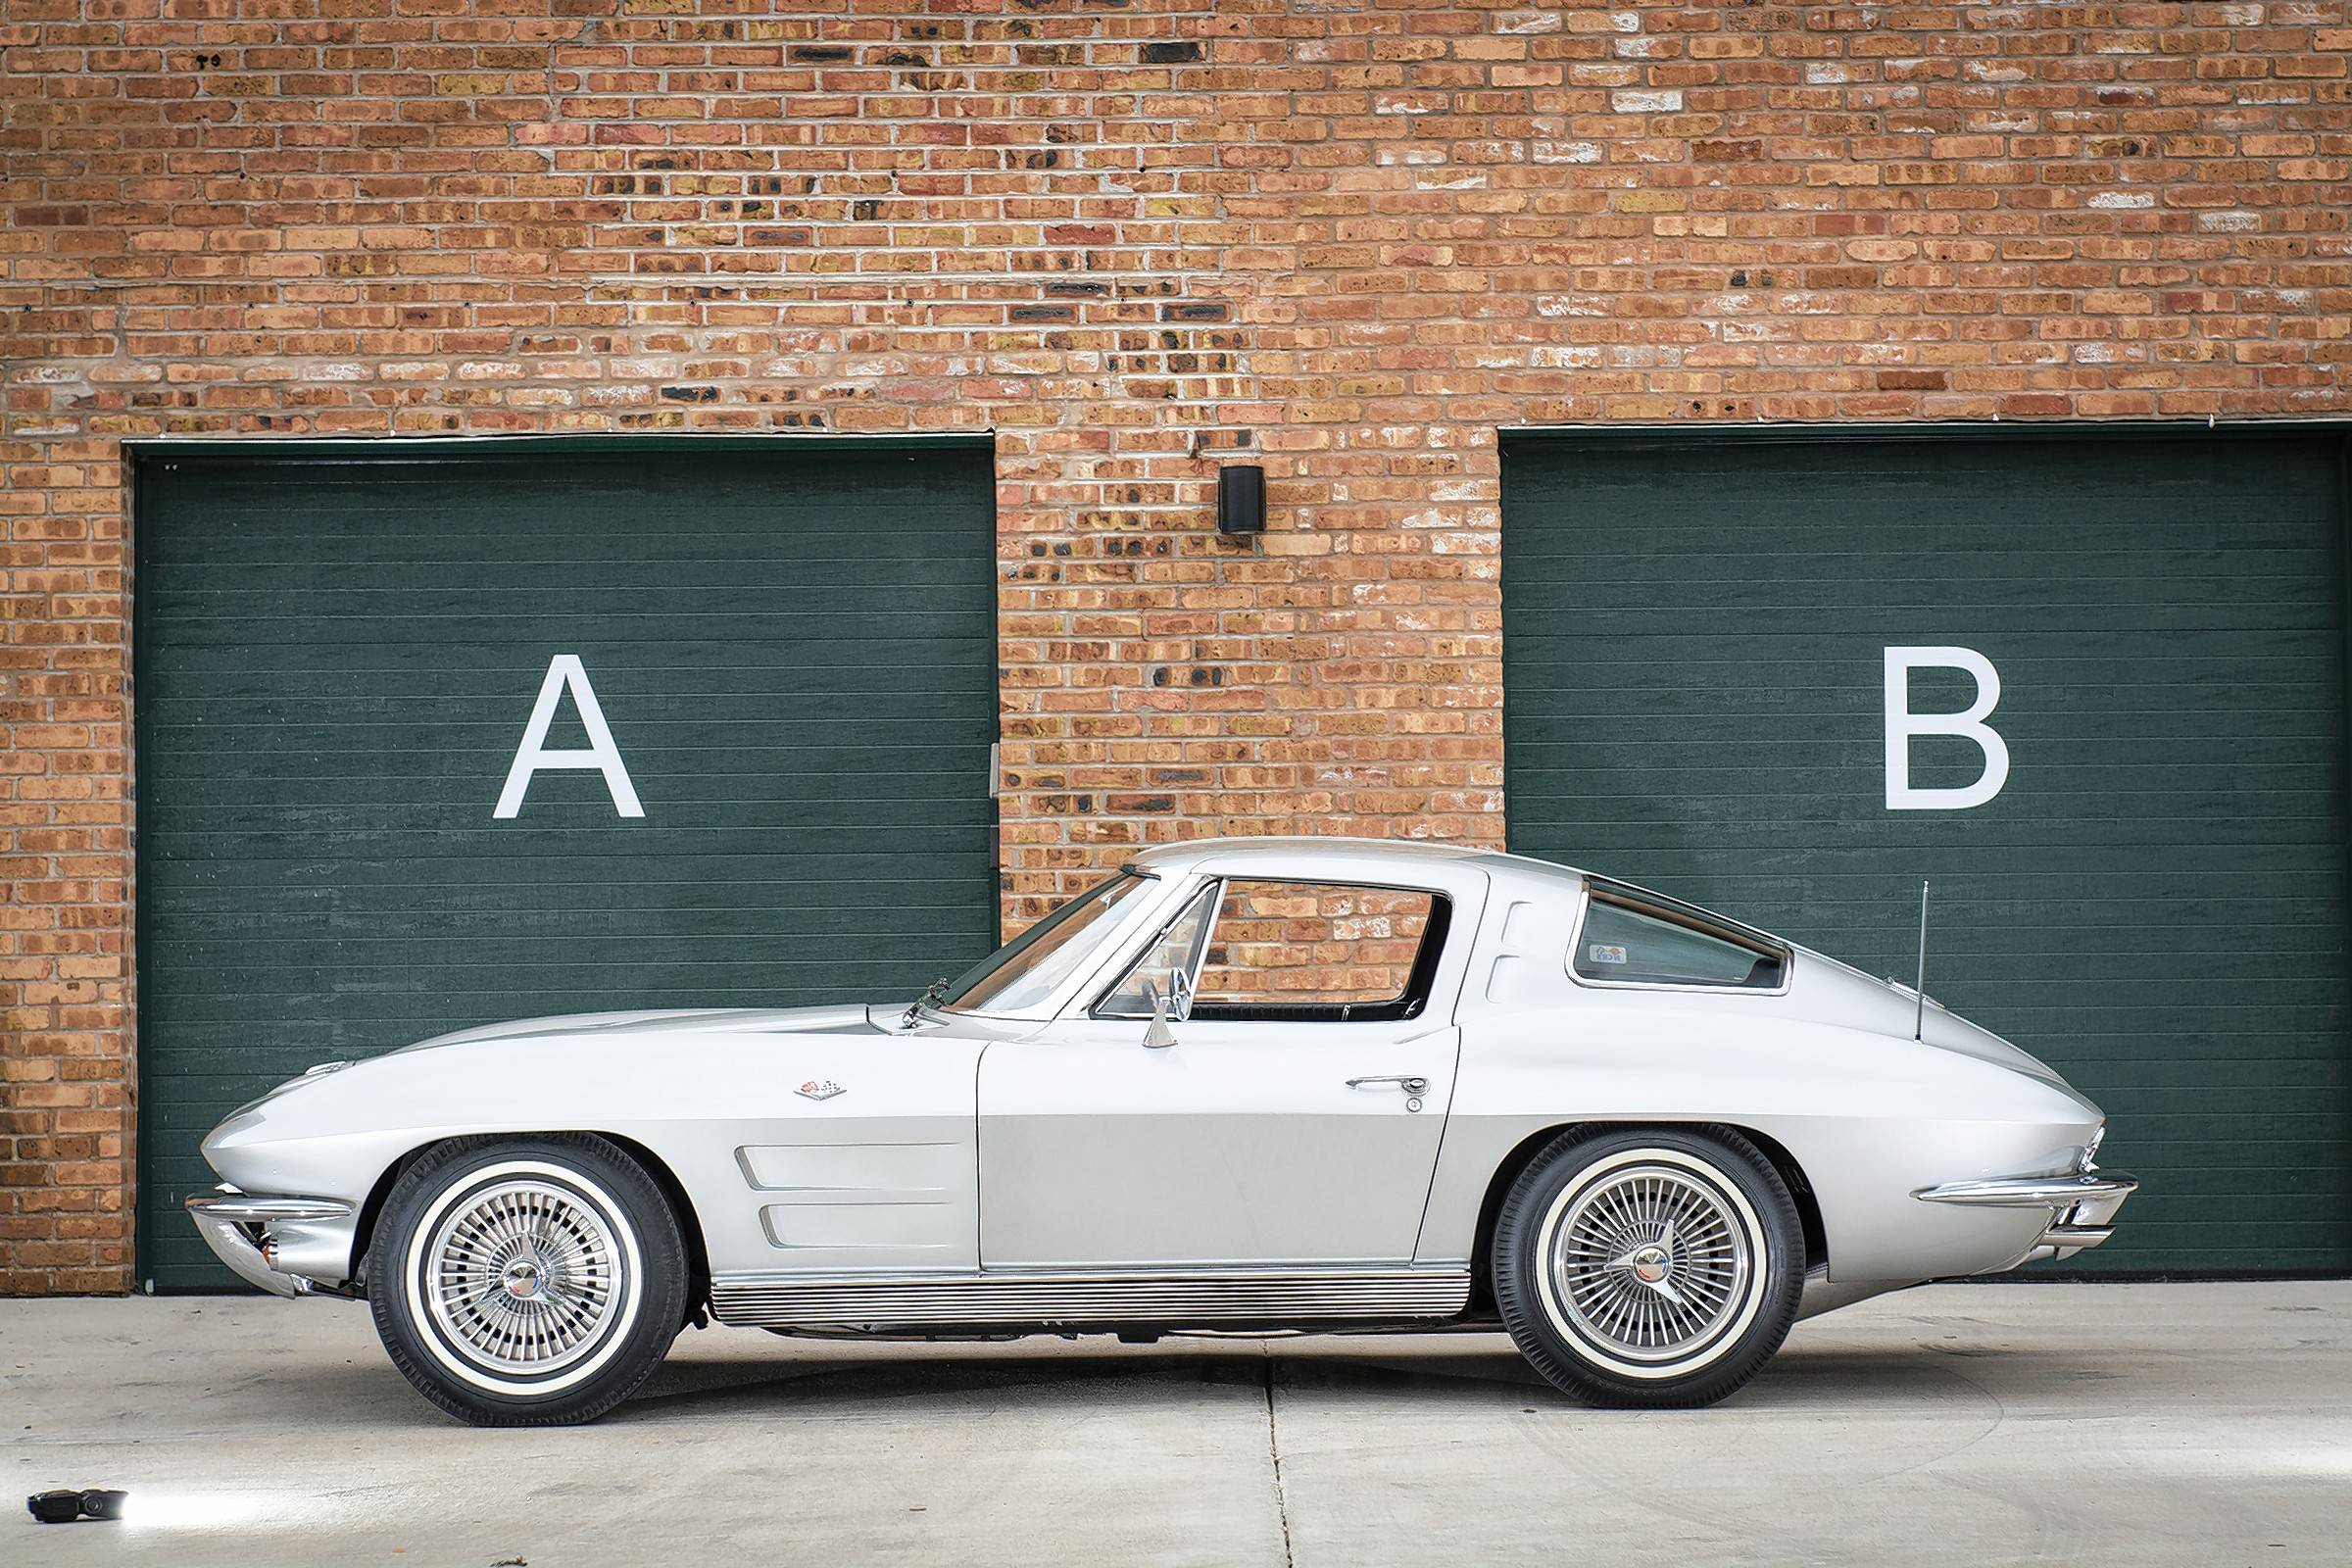 The 1963 split window Chevrolet Corvette is often considered one of the most beautiful car designs of all time.